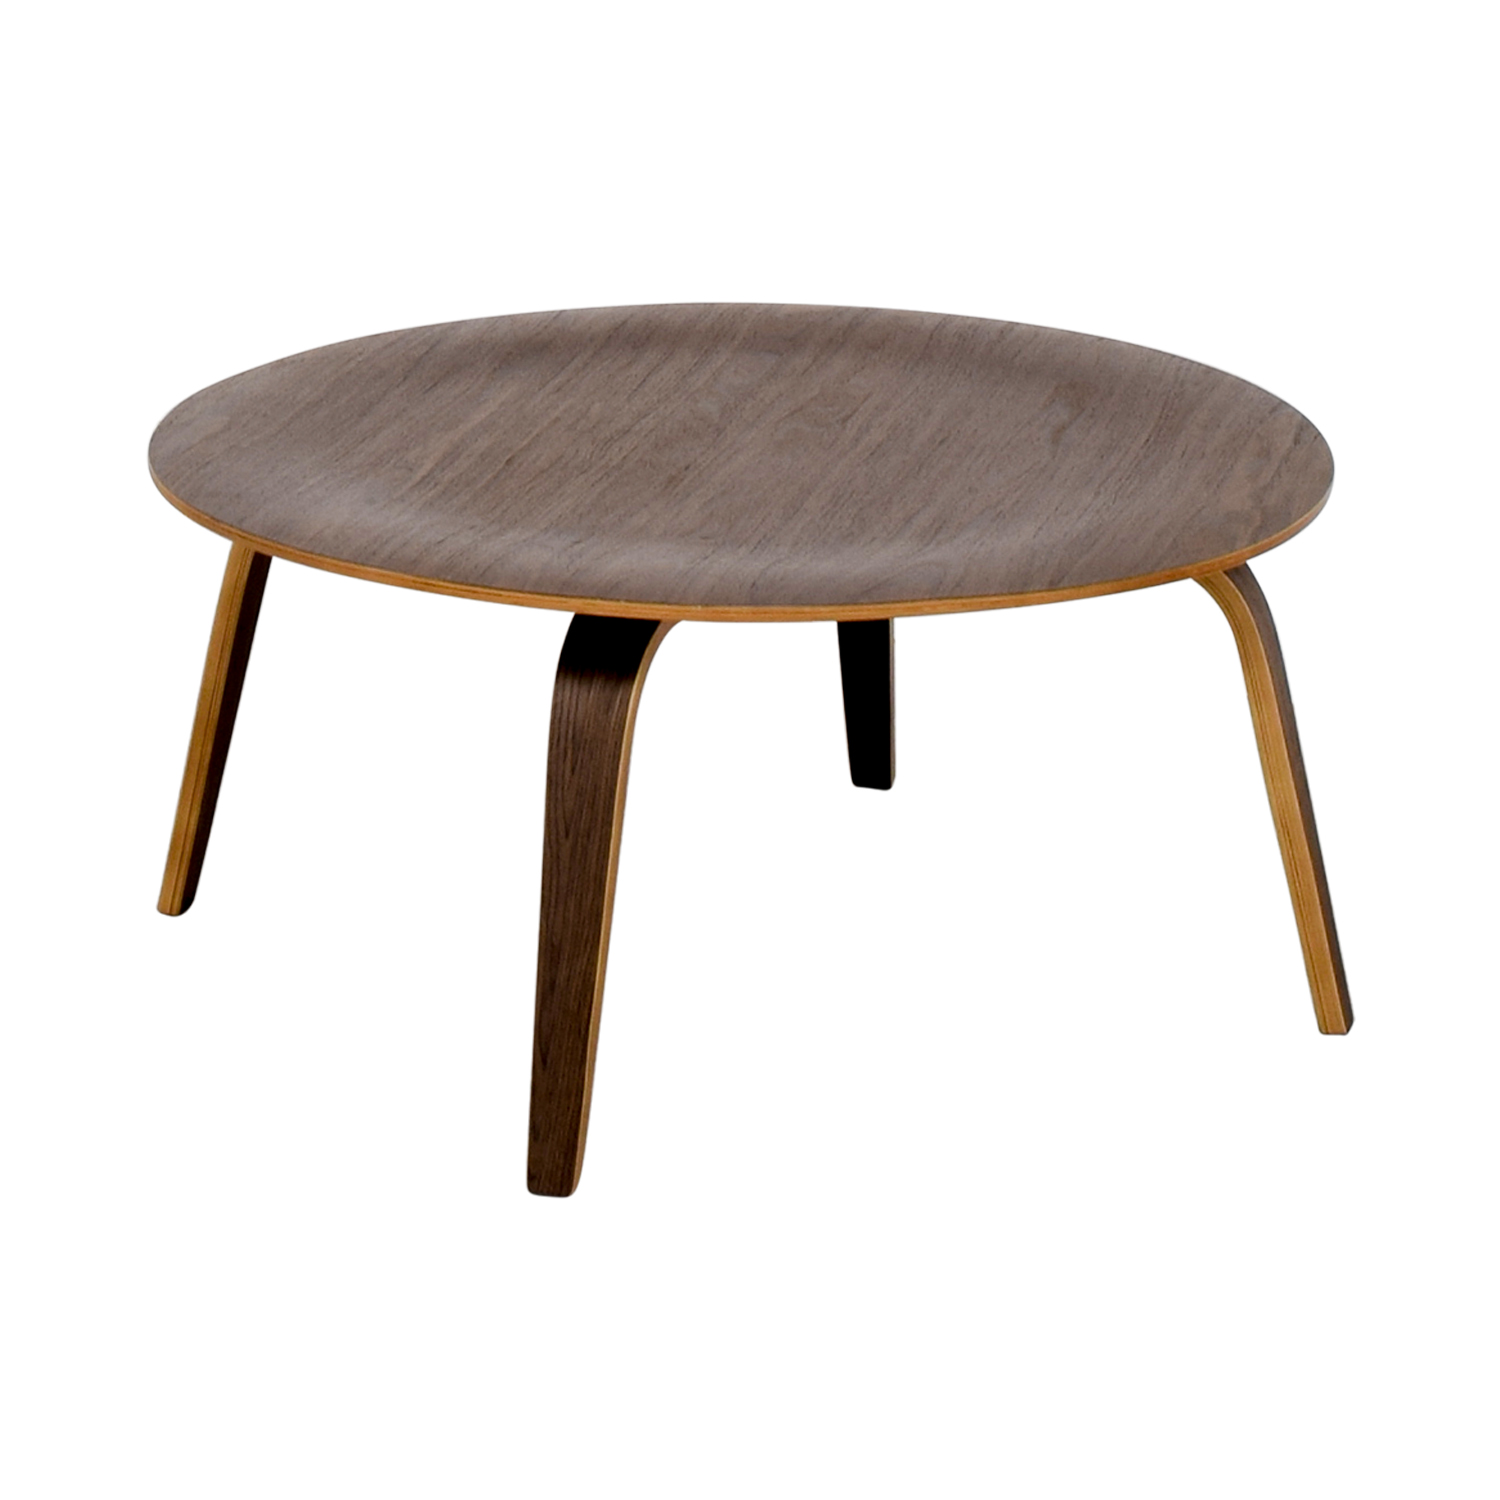 buy Modway Modway Round Coffee Table online